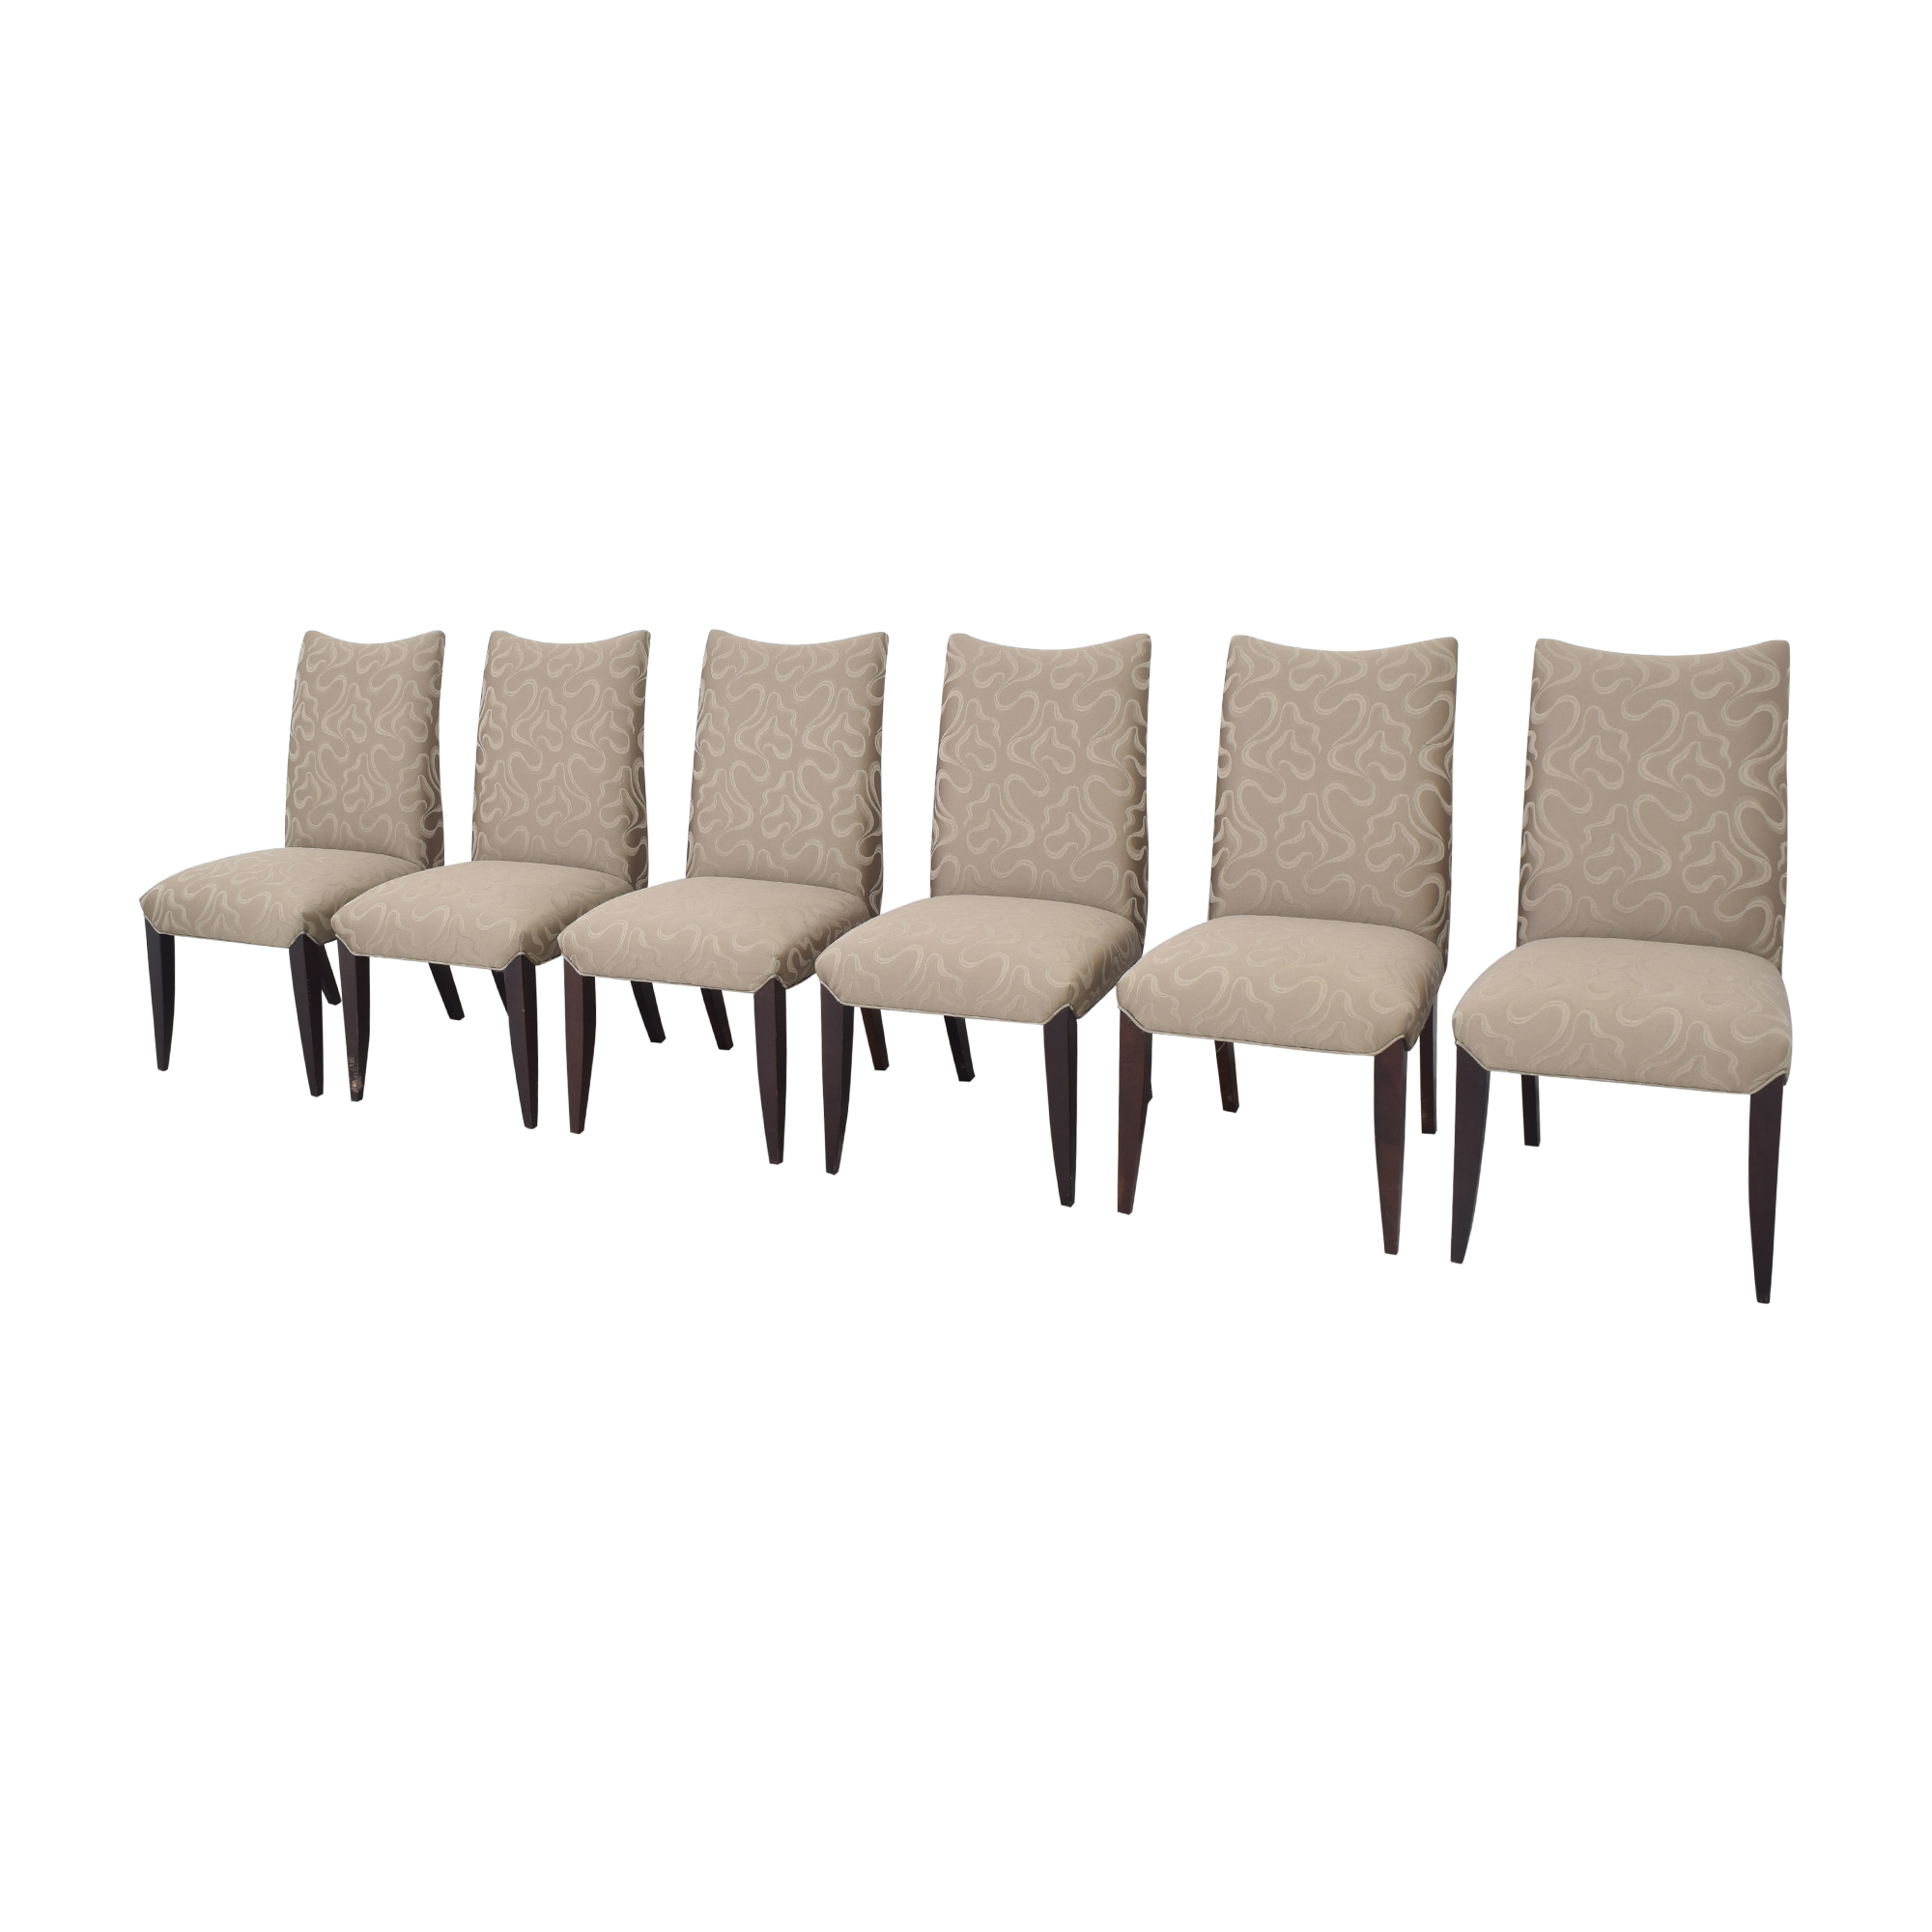 Precedent Furniture Precedent Furniture Upholstered Dining Chairs